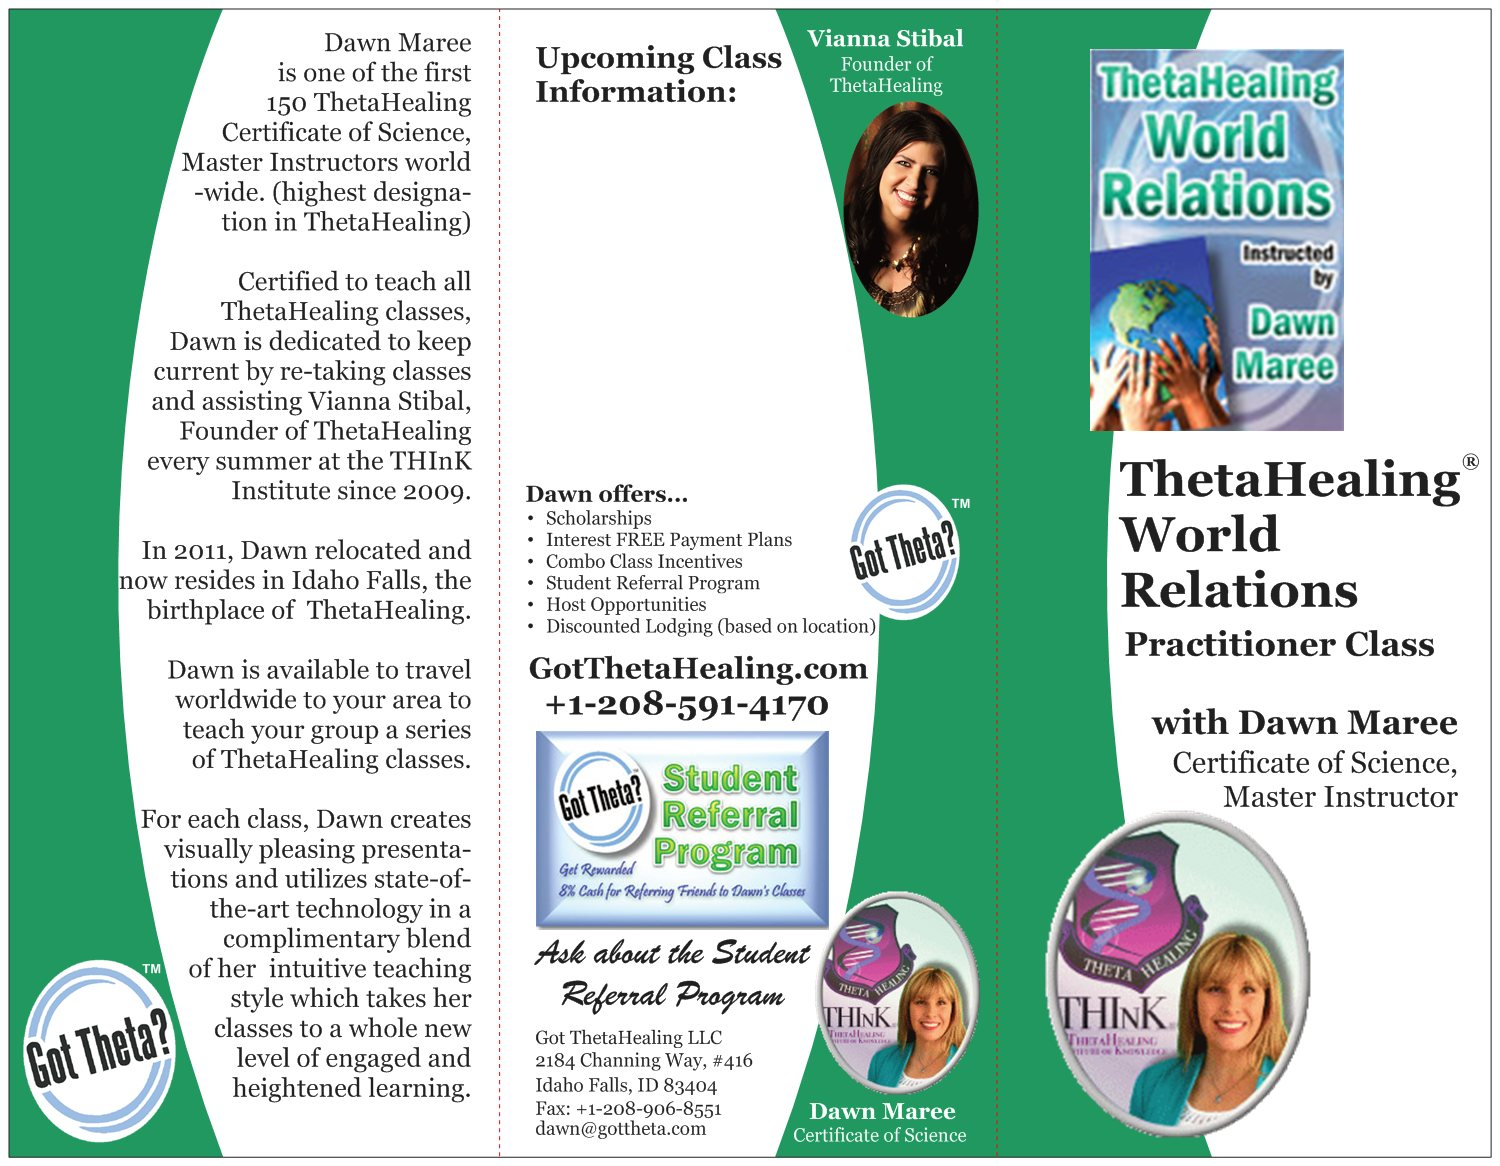 Enroll today in the ThetaHealing World Relations Class created by Vianna Stibal and instructed by Dawn Maree, Certificate of Science, Master Instructor in the ThetaHealing modality. Dawn offers combo class incentives, interest free payment plans, scholarships and free gift with registration. Dawn also is available to travel to your area to teach your group this class.